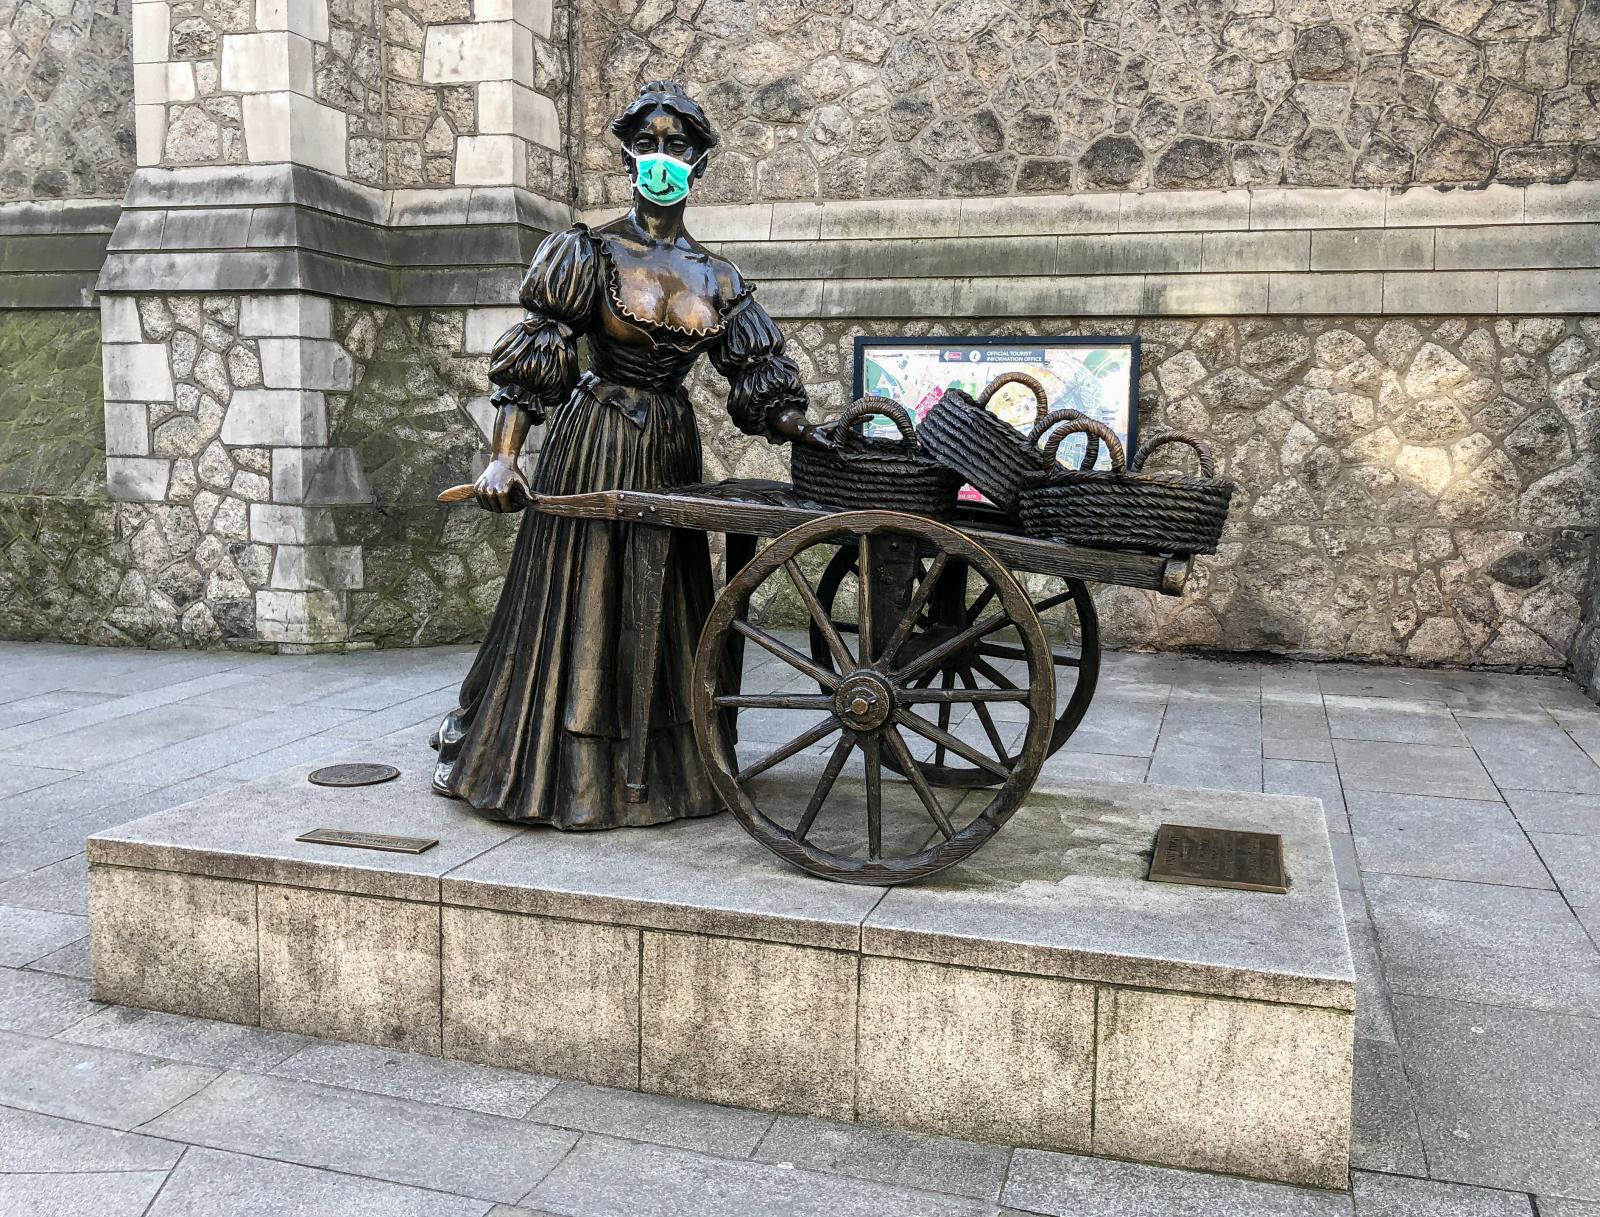 Photography image - Loading Pre-lockdown_Molly_Malone_Statue_Suffolk_Street_Dublin_March_2020.jpg